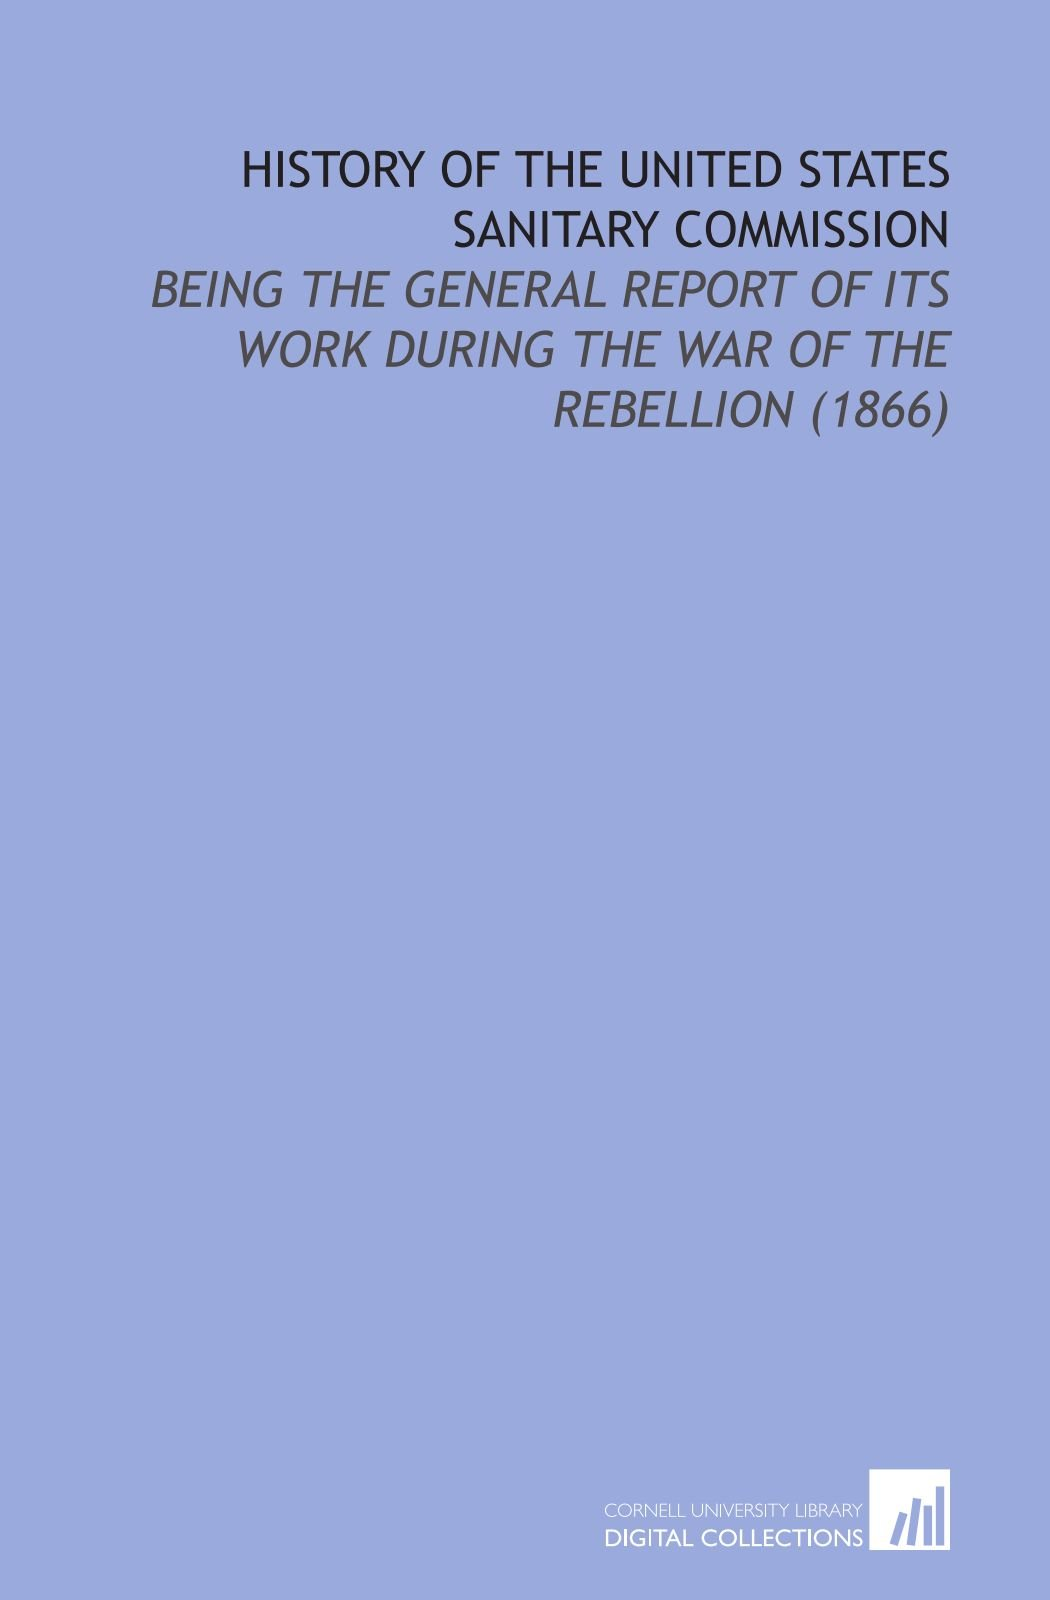 Download History of the United States Sanitary Commission: Being the General Report of its Work During the War of the Rebellion (1866) PDF